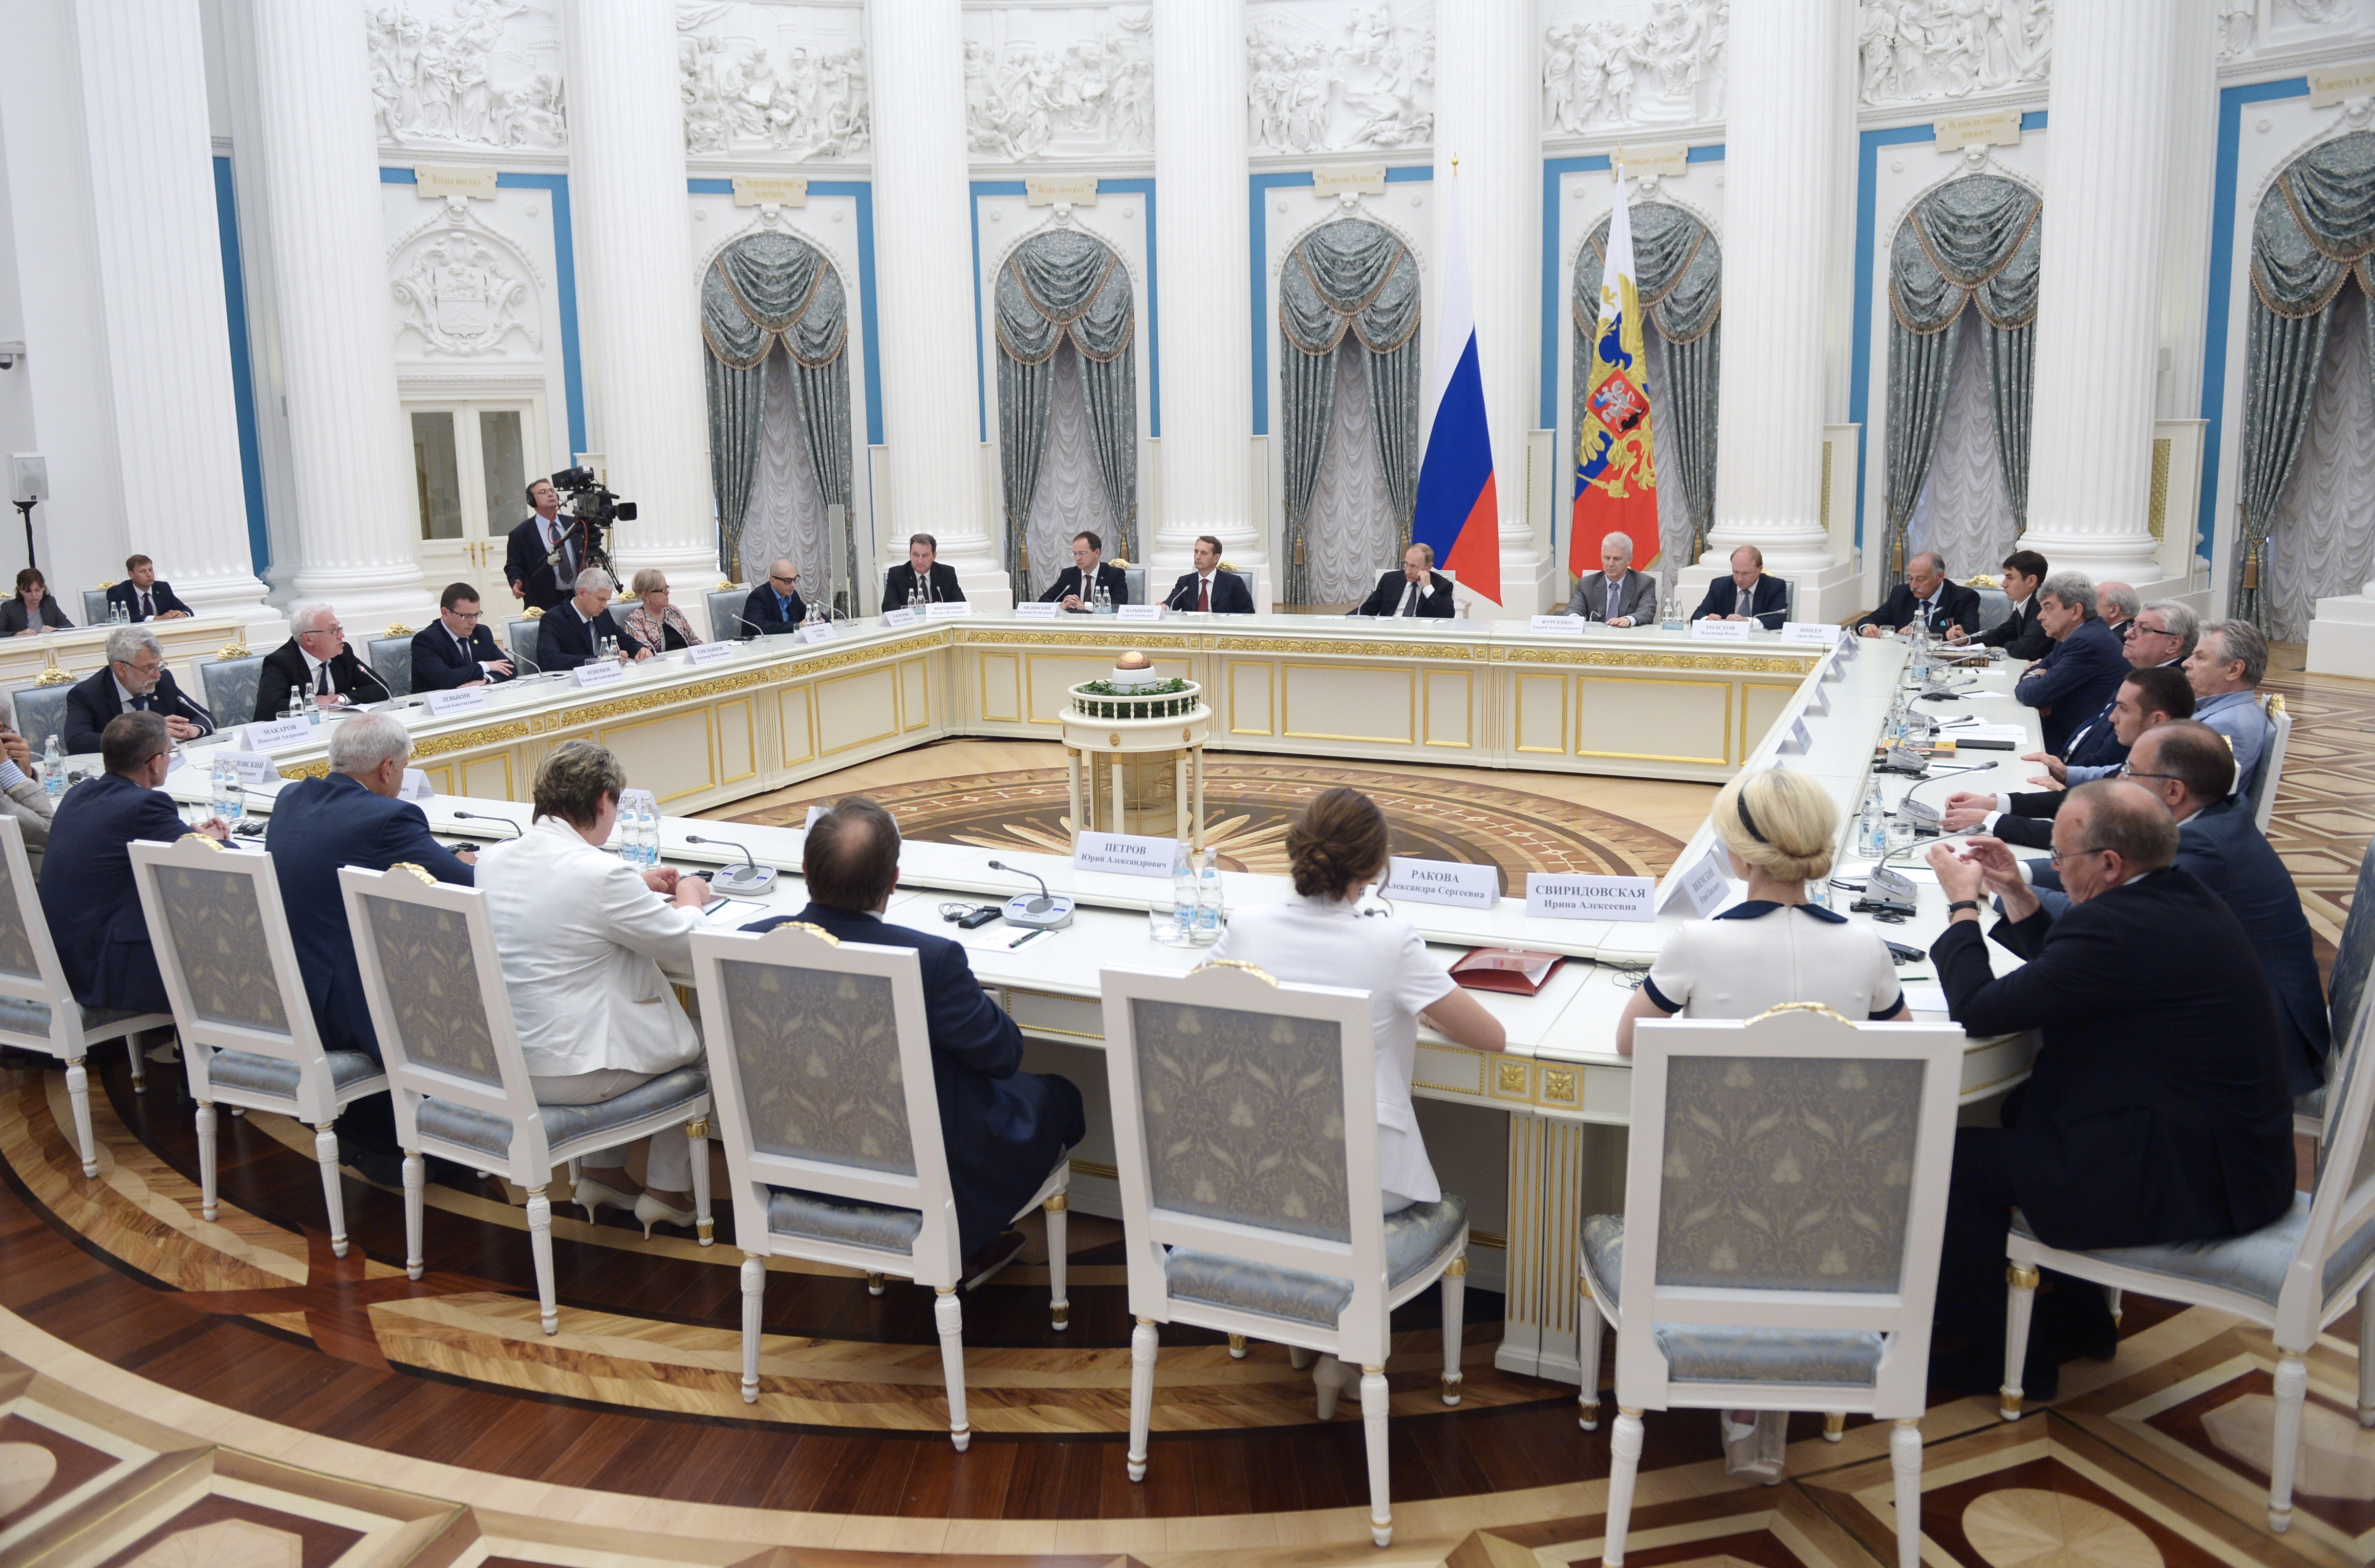 President Putin meets with All-Russian Historical Assembly delegates